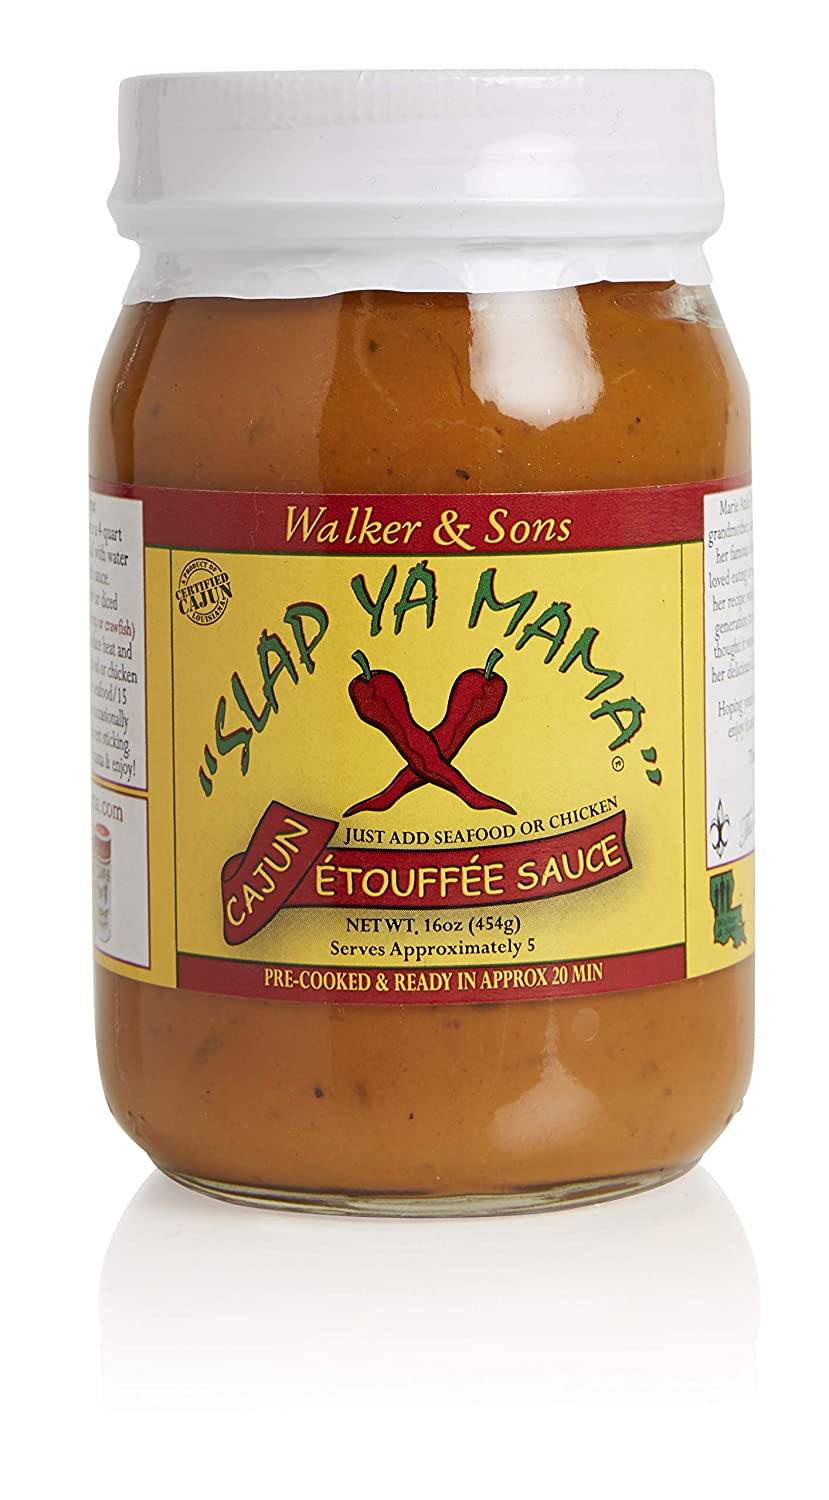 Slap Ya Mama Cajun Etoufee Sauce for Chicken or Seafood, Pre Cooked, 16 Ounce